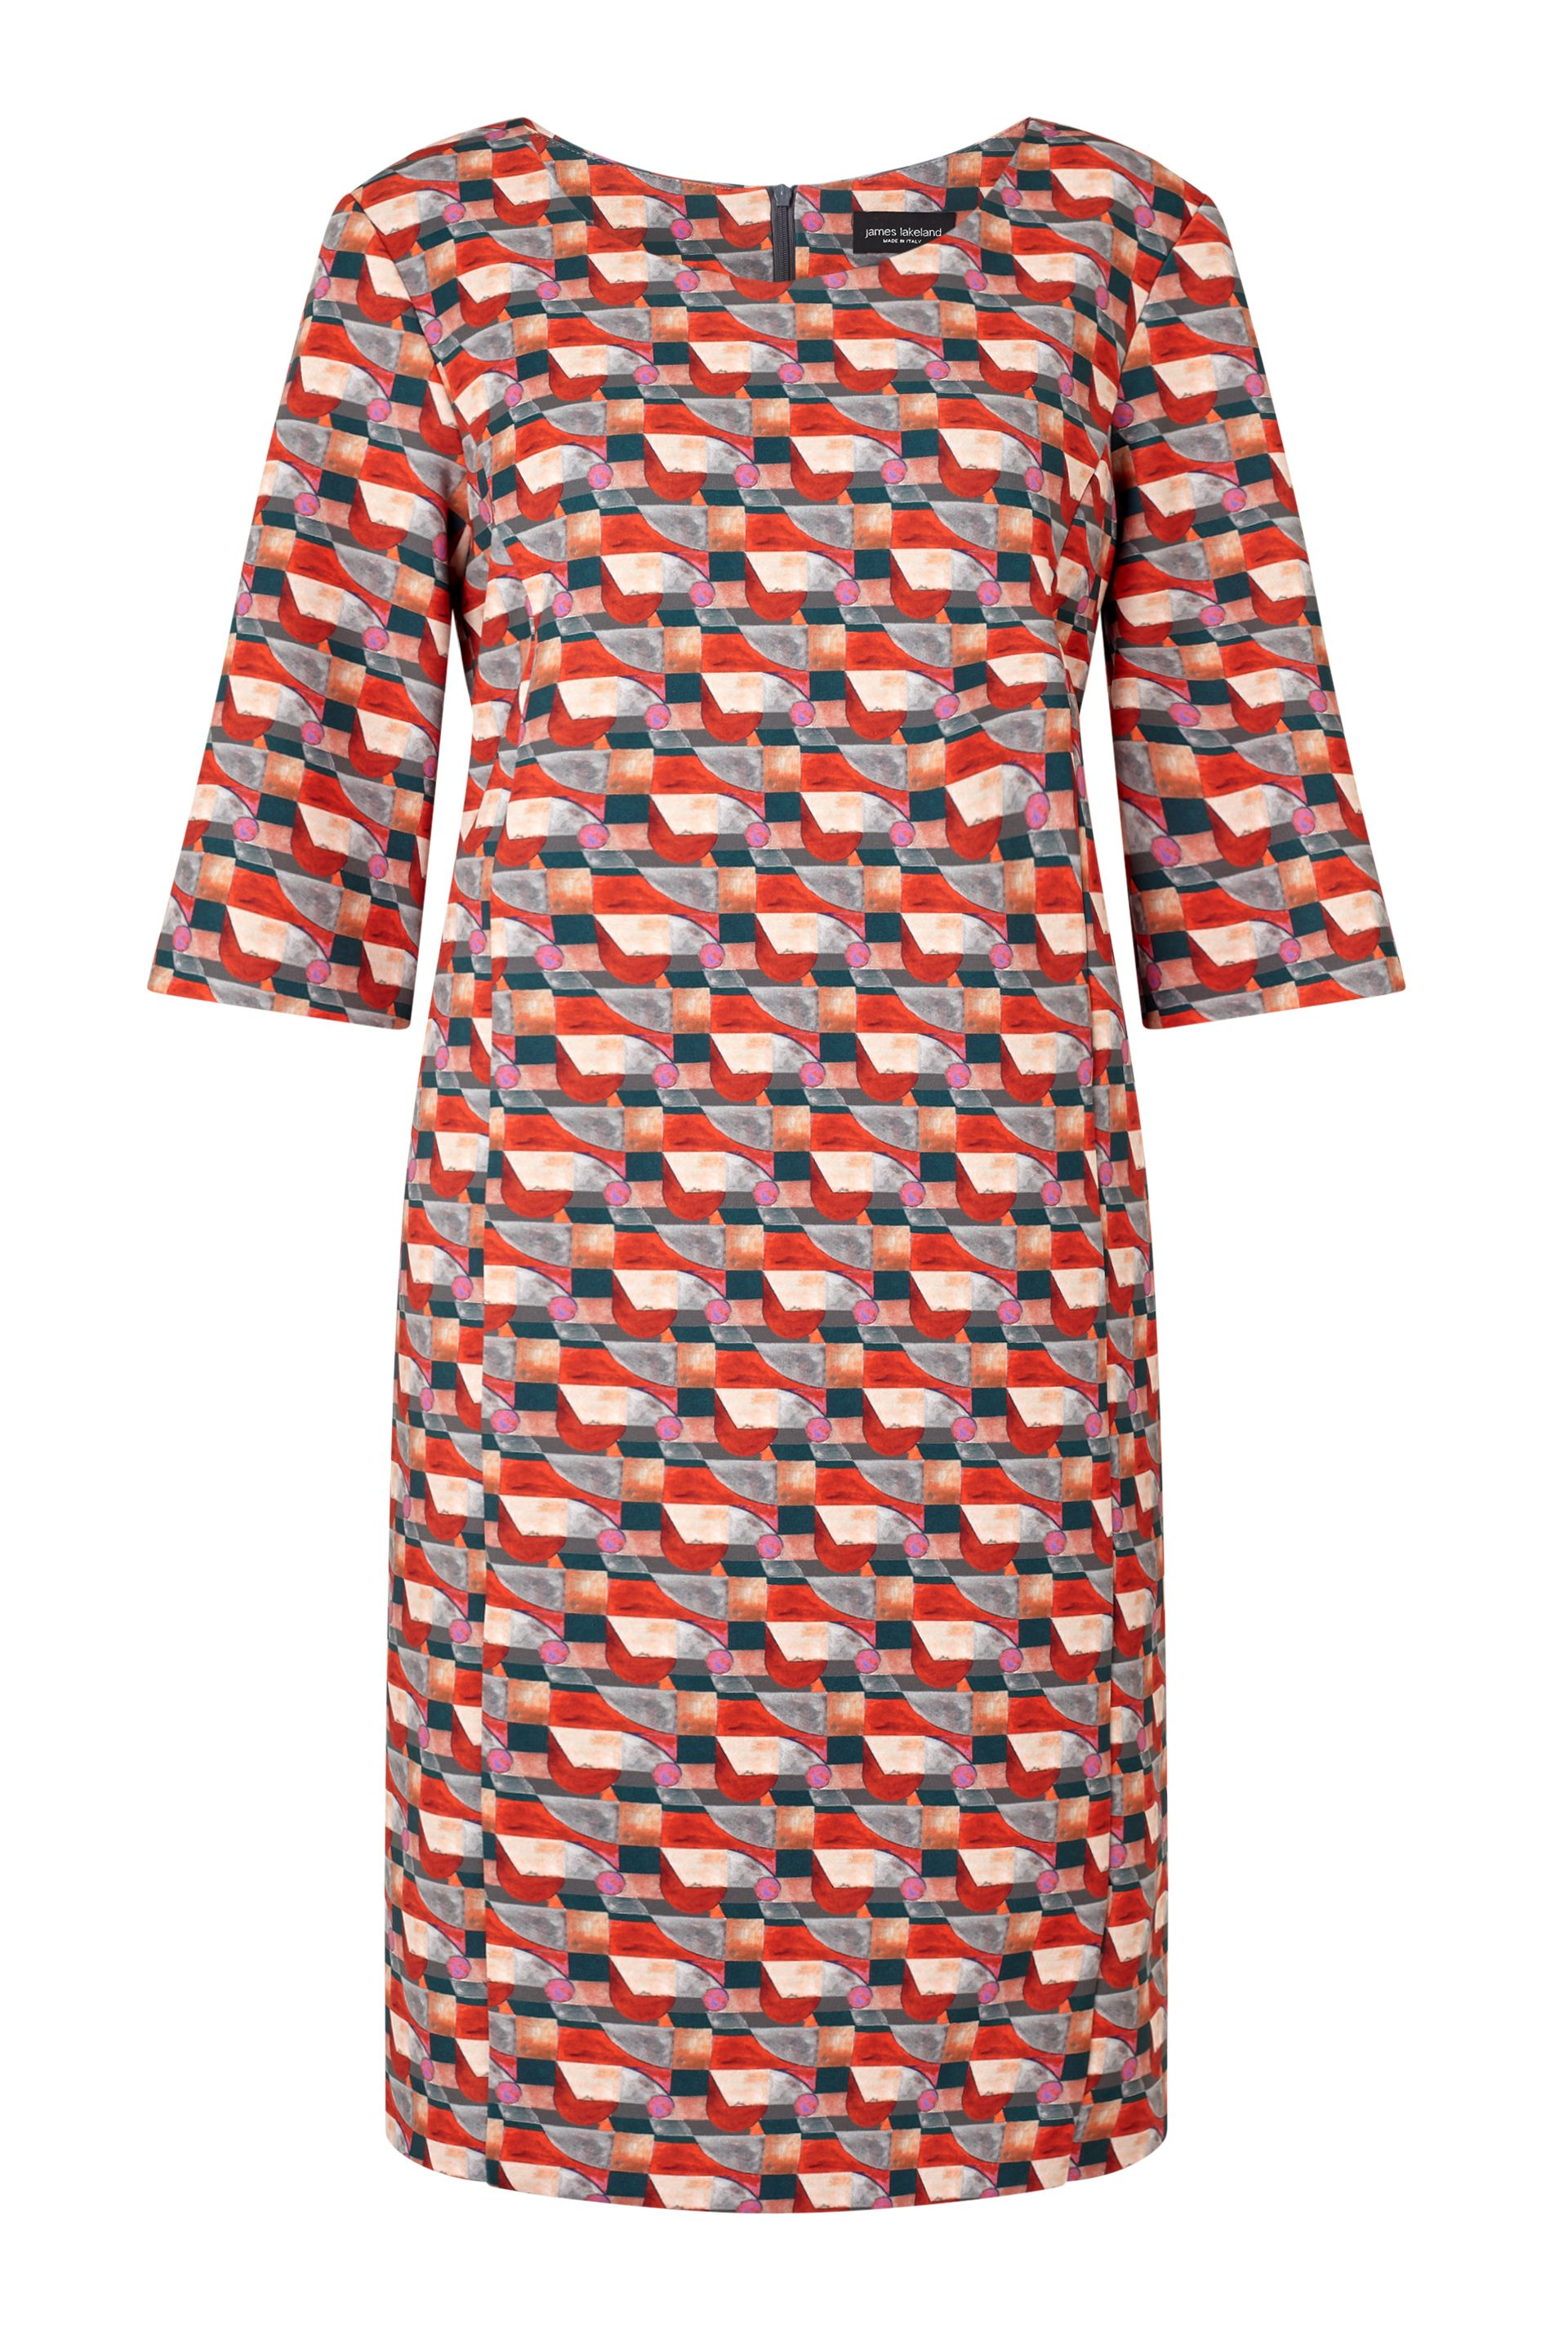 James Lakeland Printed Shift Dress, Orange